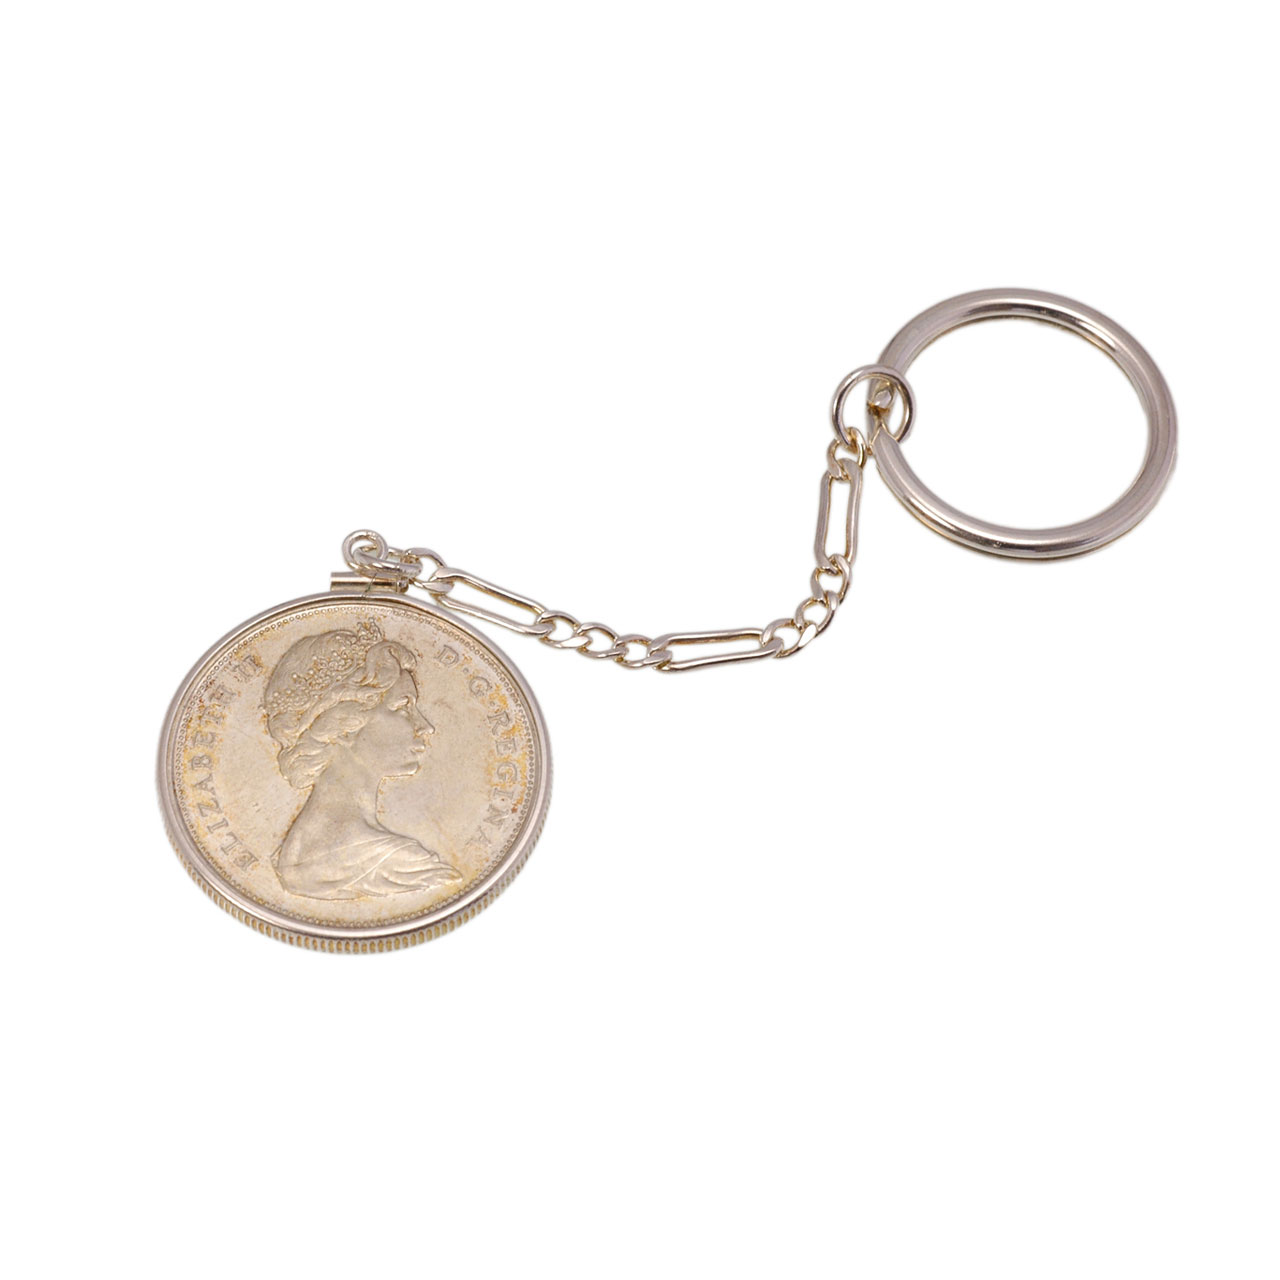 Key chain with Canadian silver coin 2